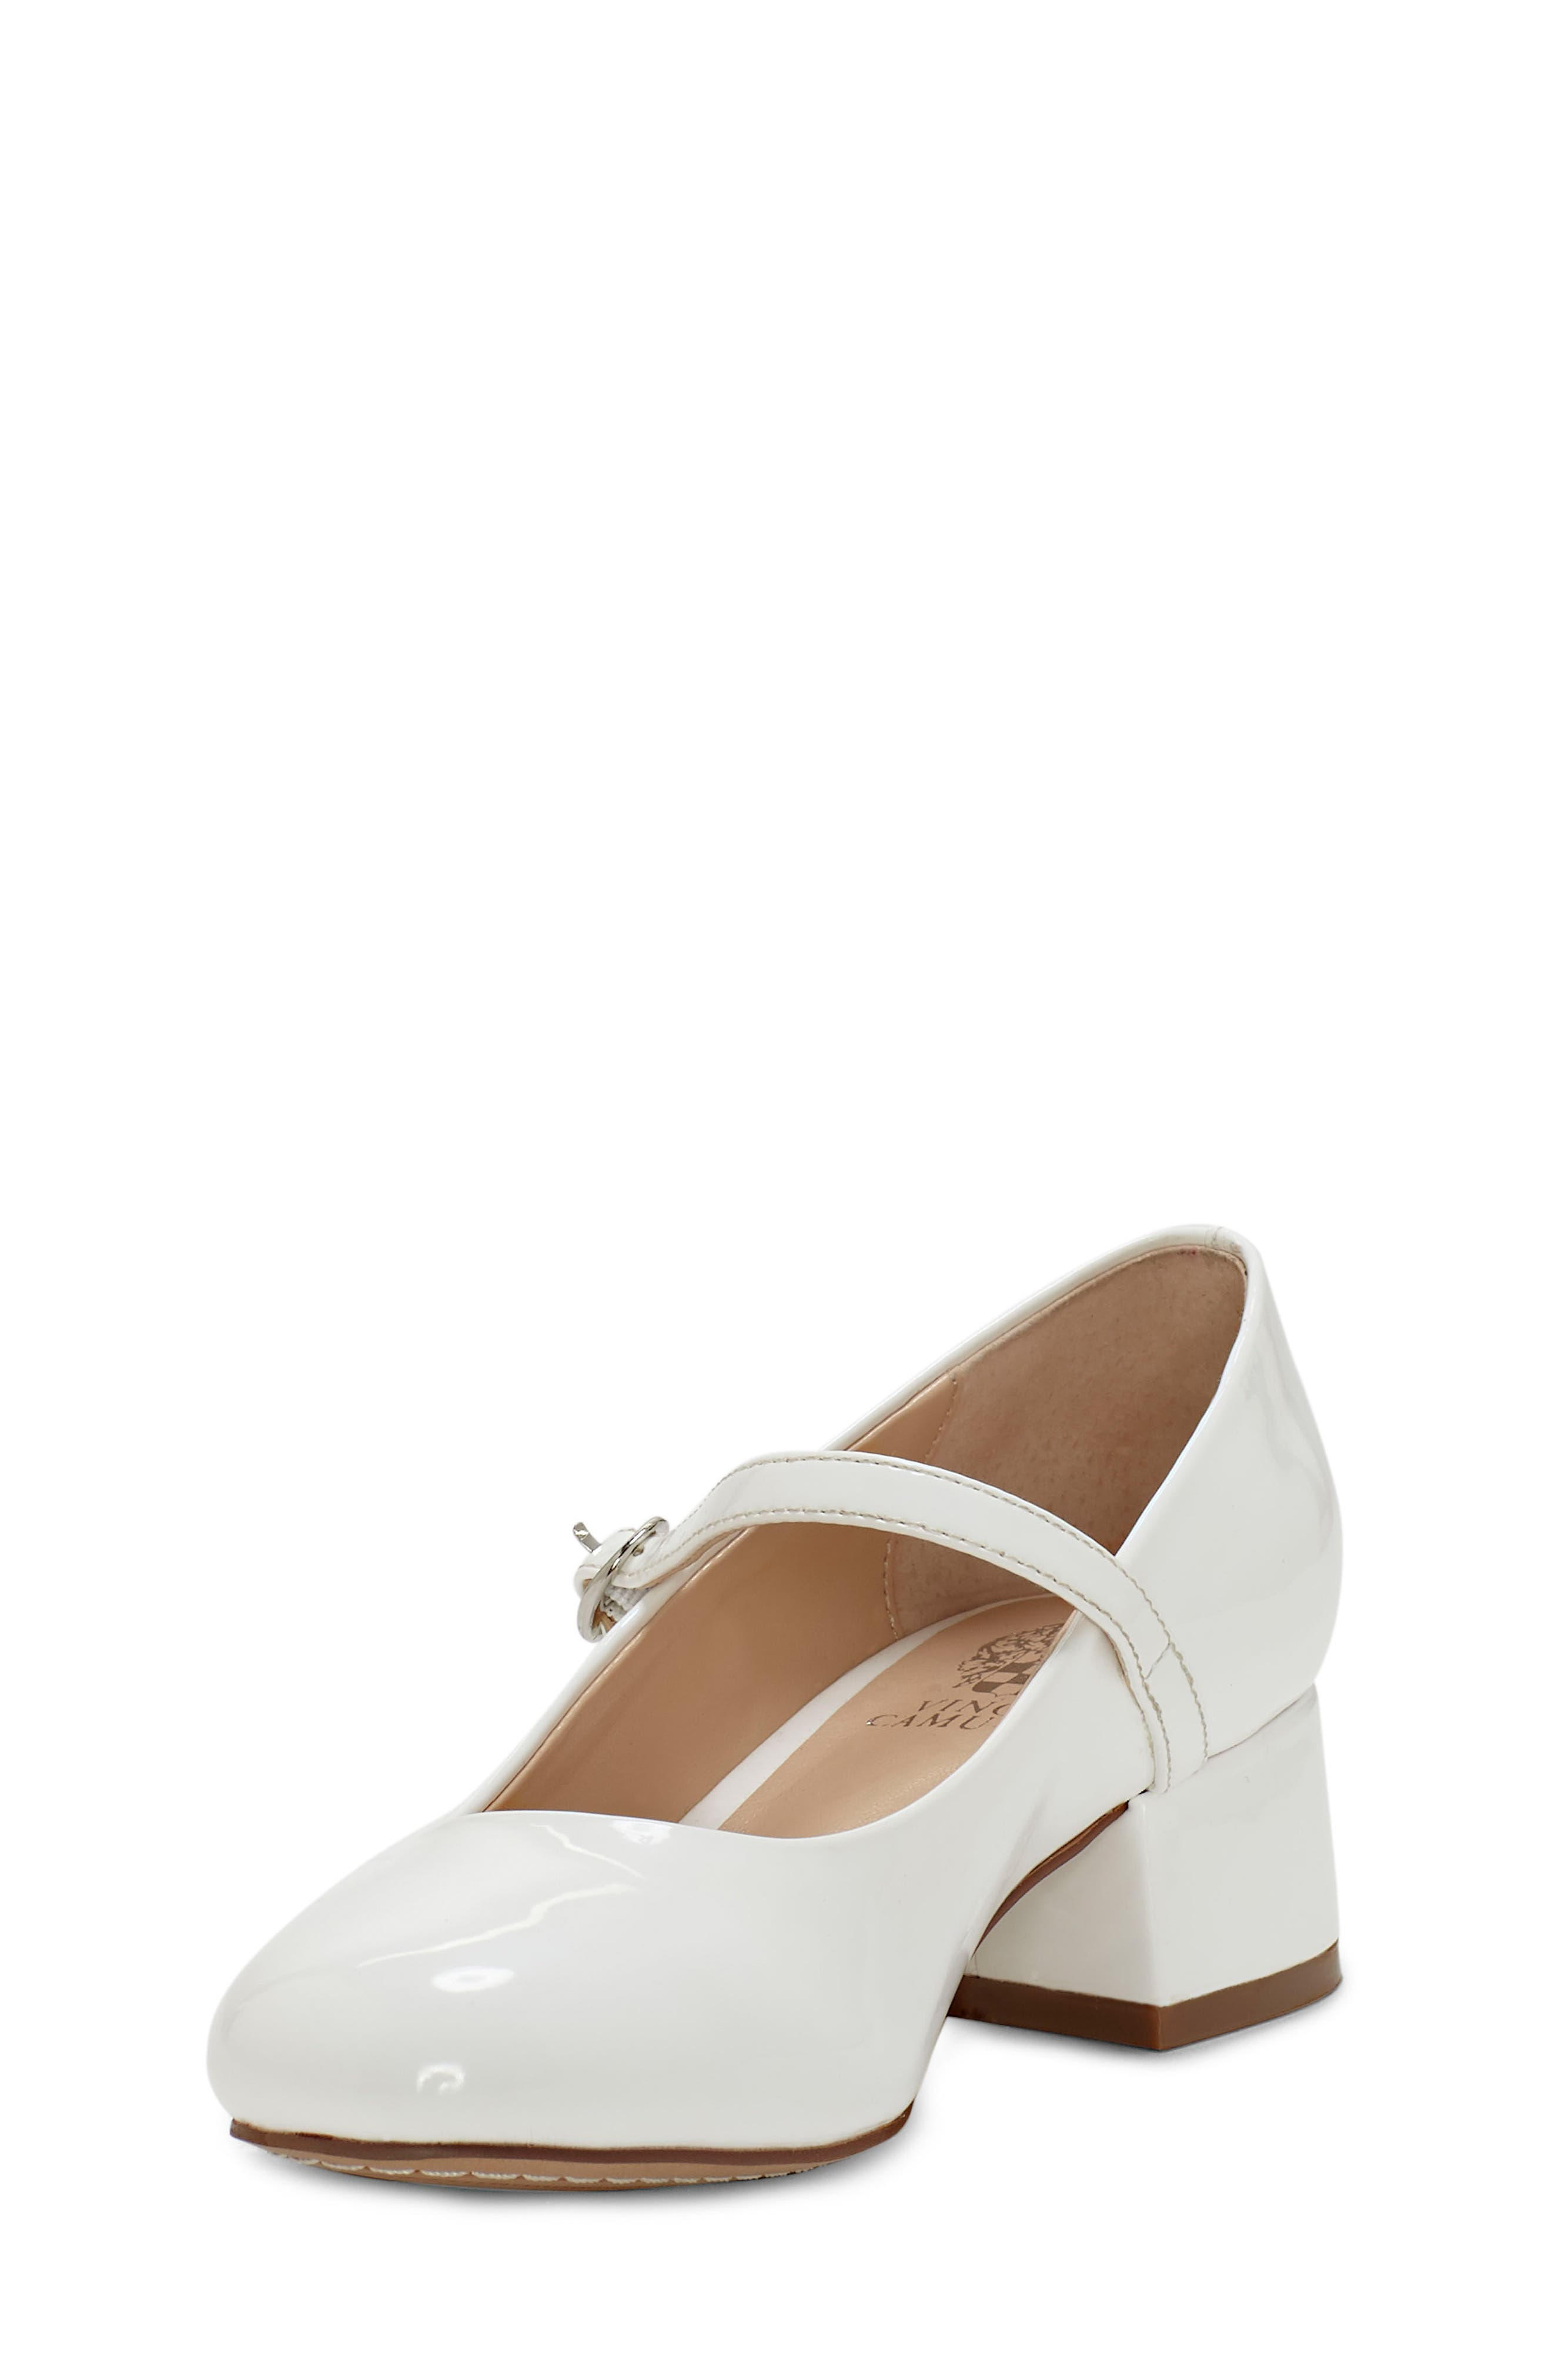 VINCE CAMUTO,                             Brenna Mary Jane Pump,                             Alternate thumbnail 5, color,                             WHITE